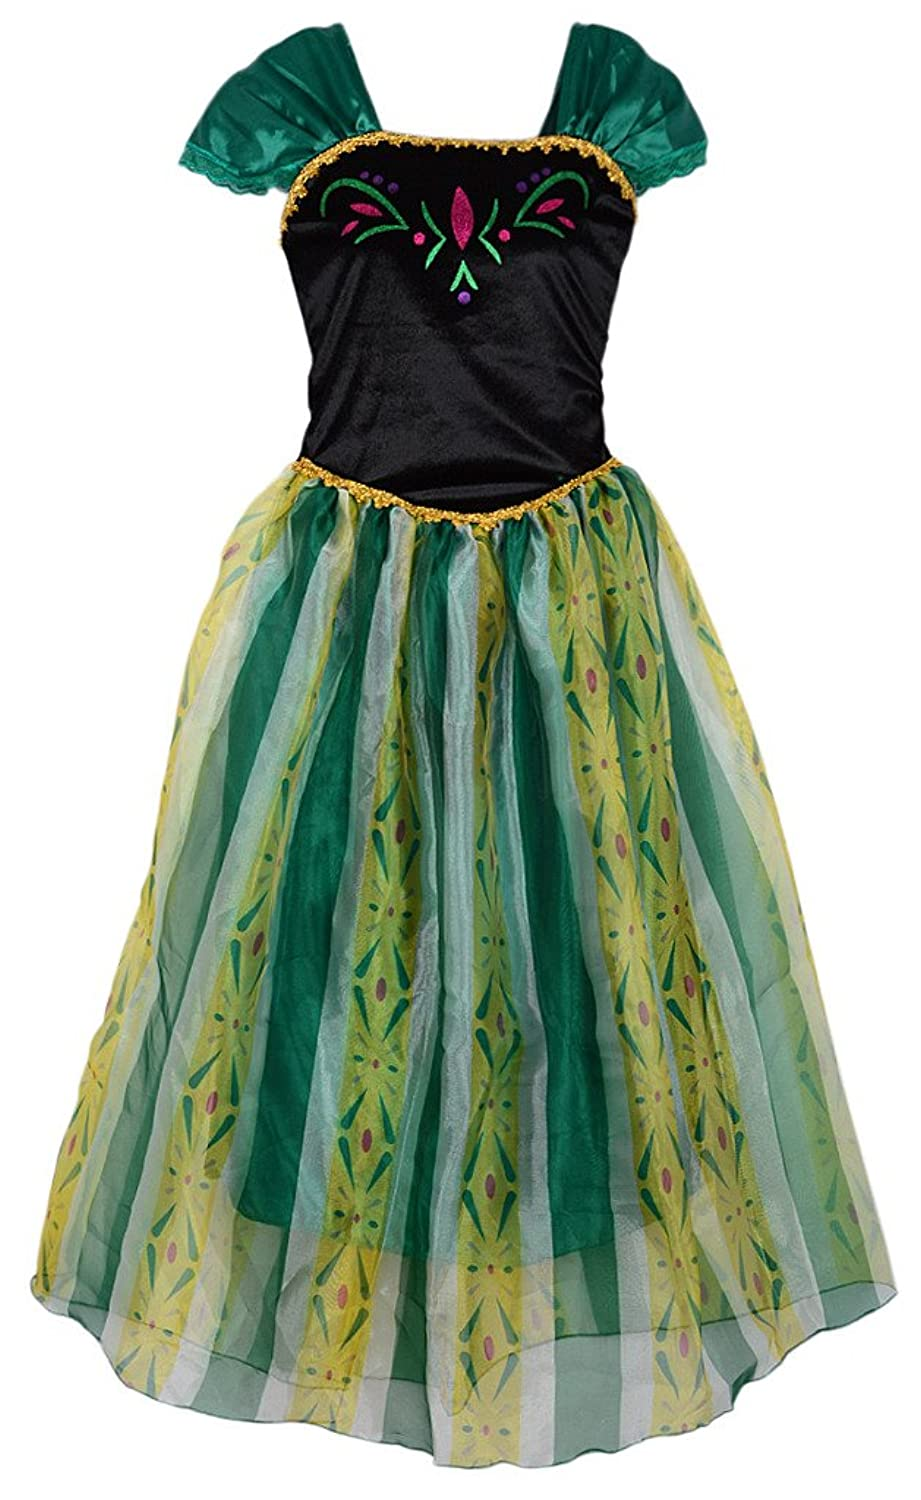 Eyekepper Women's Princess Anna Dress Cosply Costume Adult